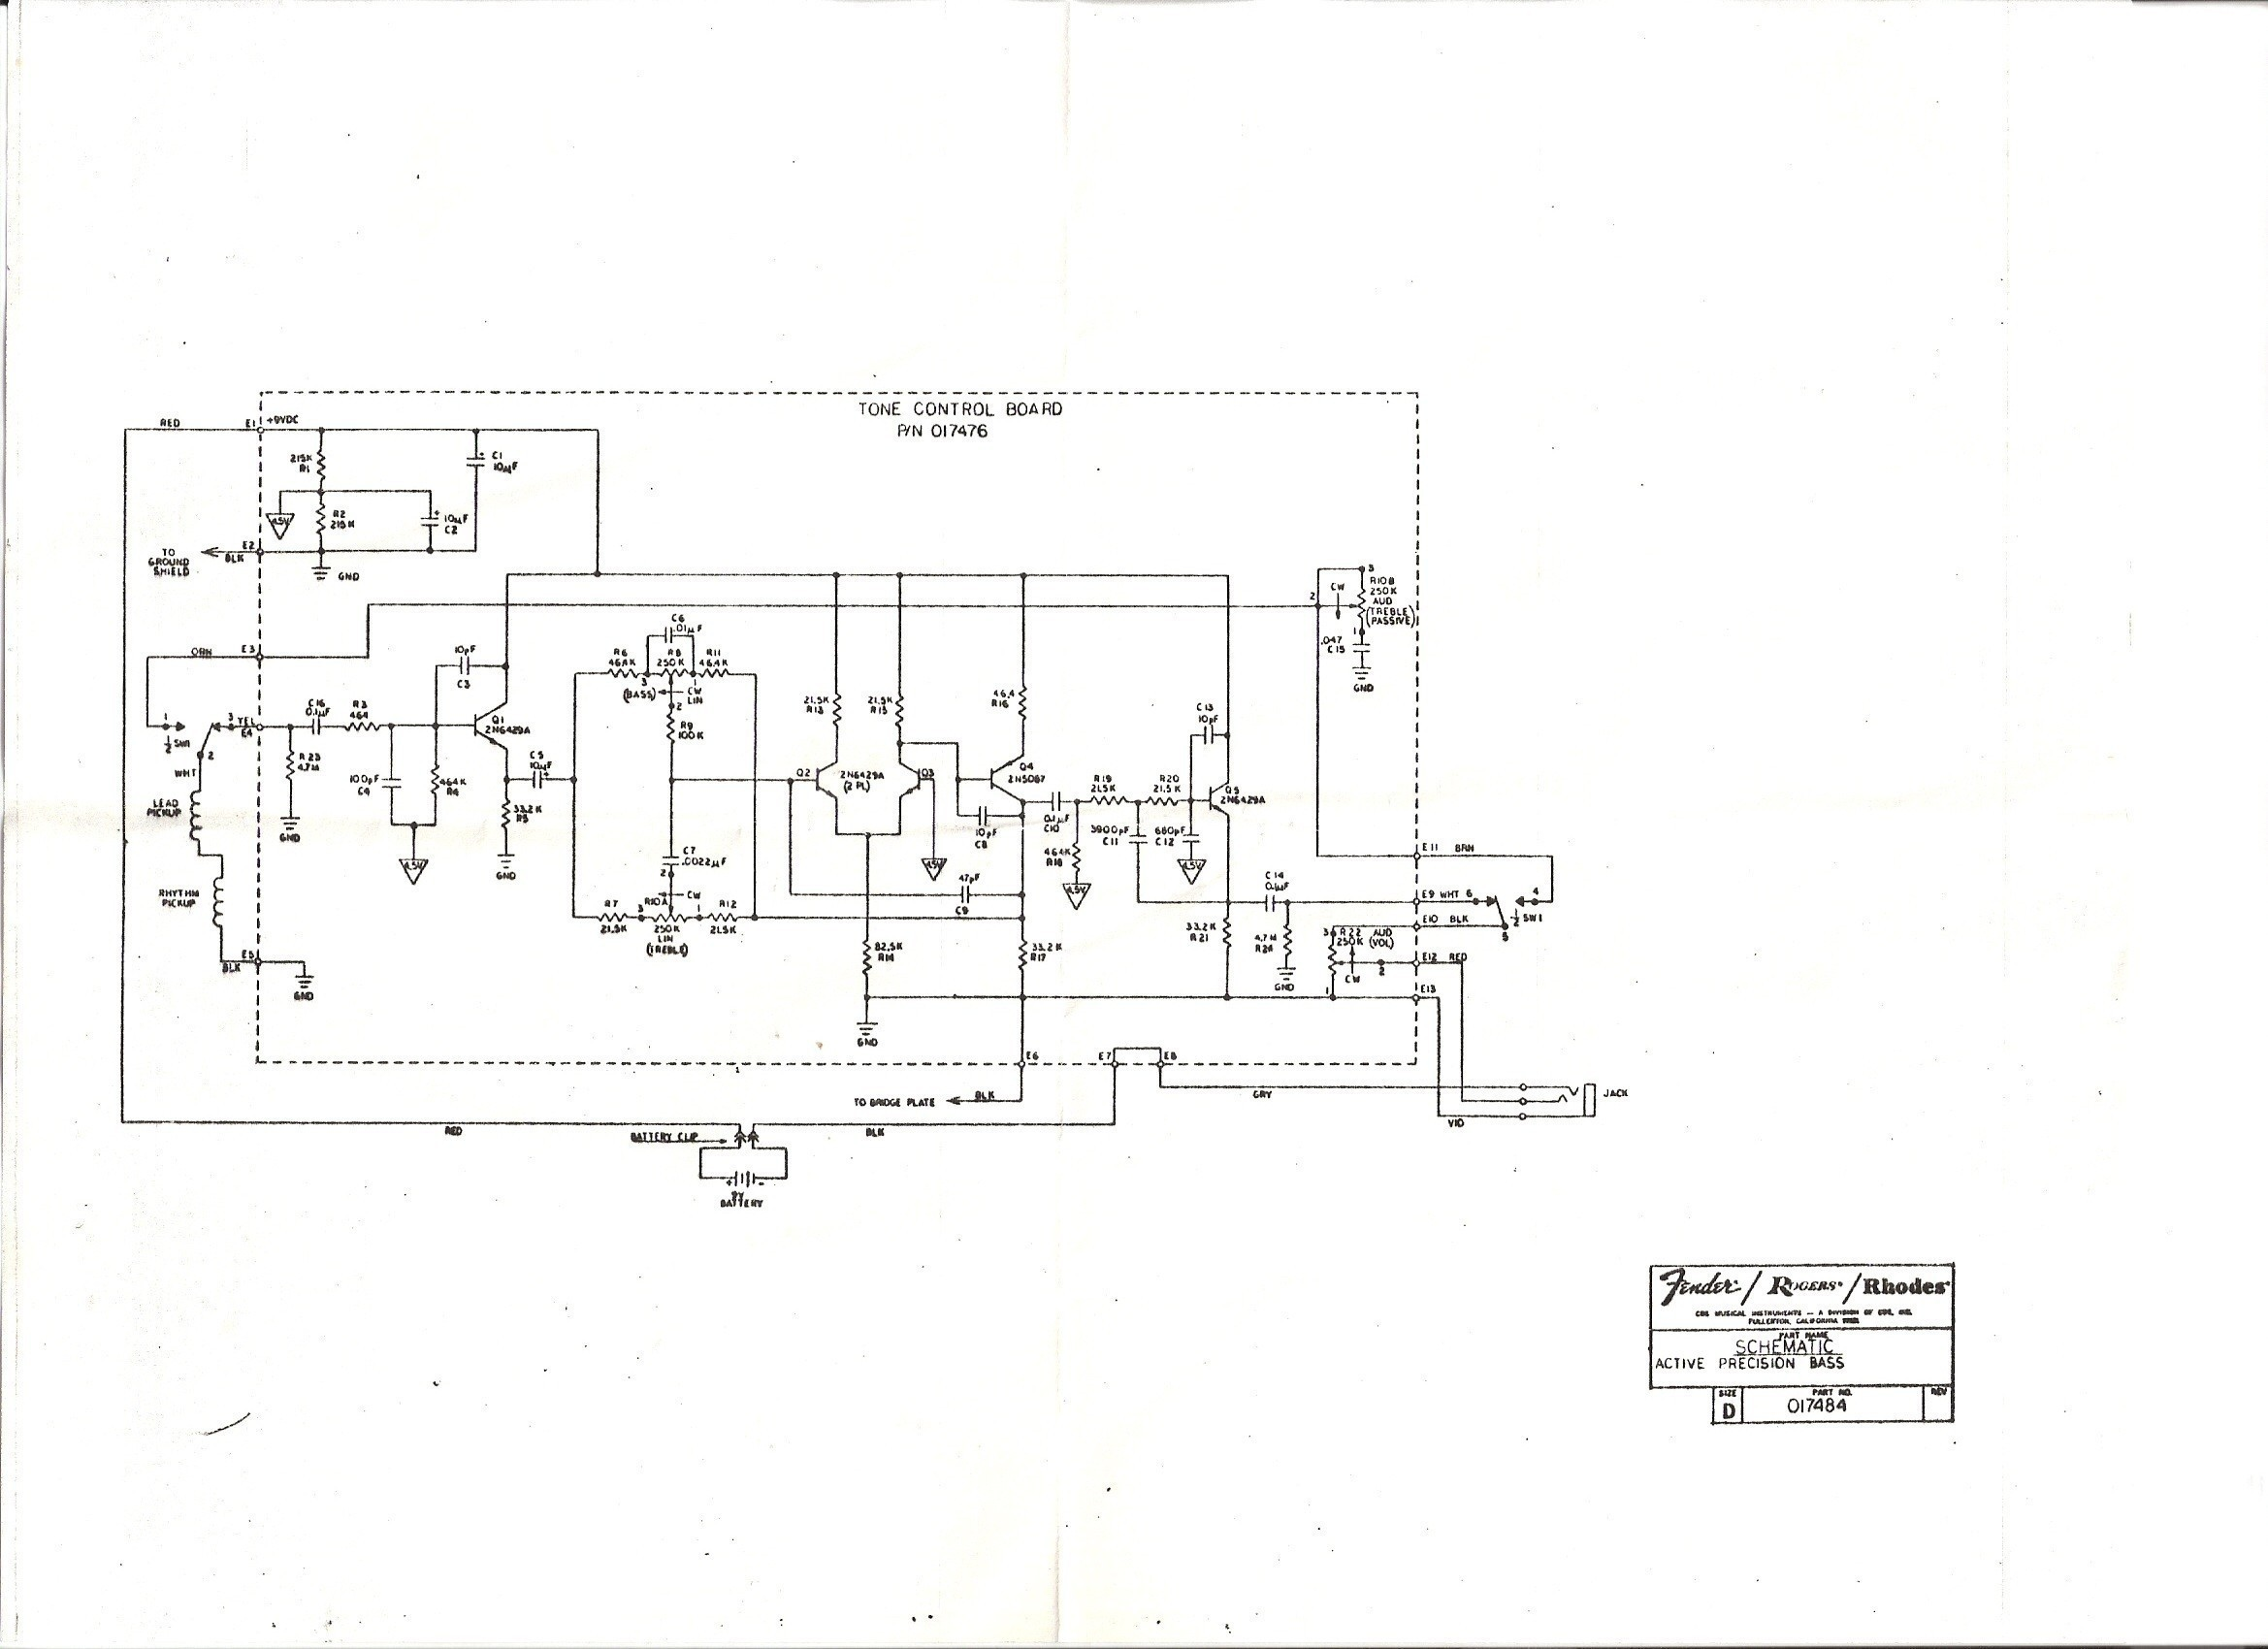 ☑ 74 fender jazz b wiring diagram hd quality ☑ yordon-and-code-diagram .twirlinglucca.it  twirlinglucca.it